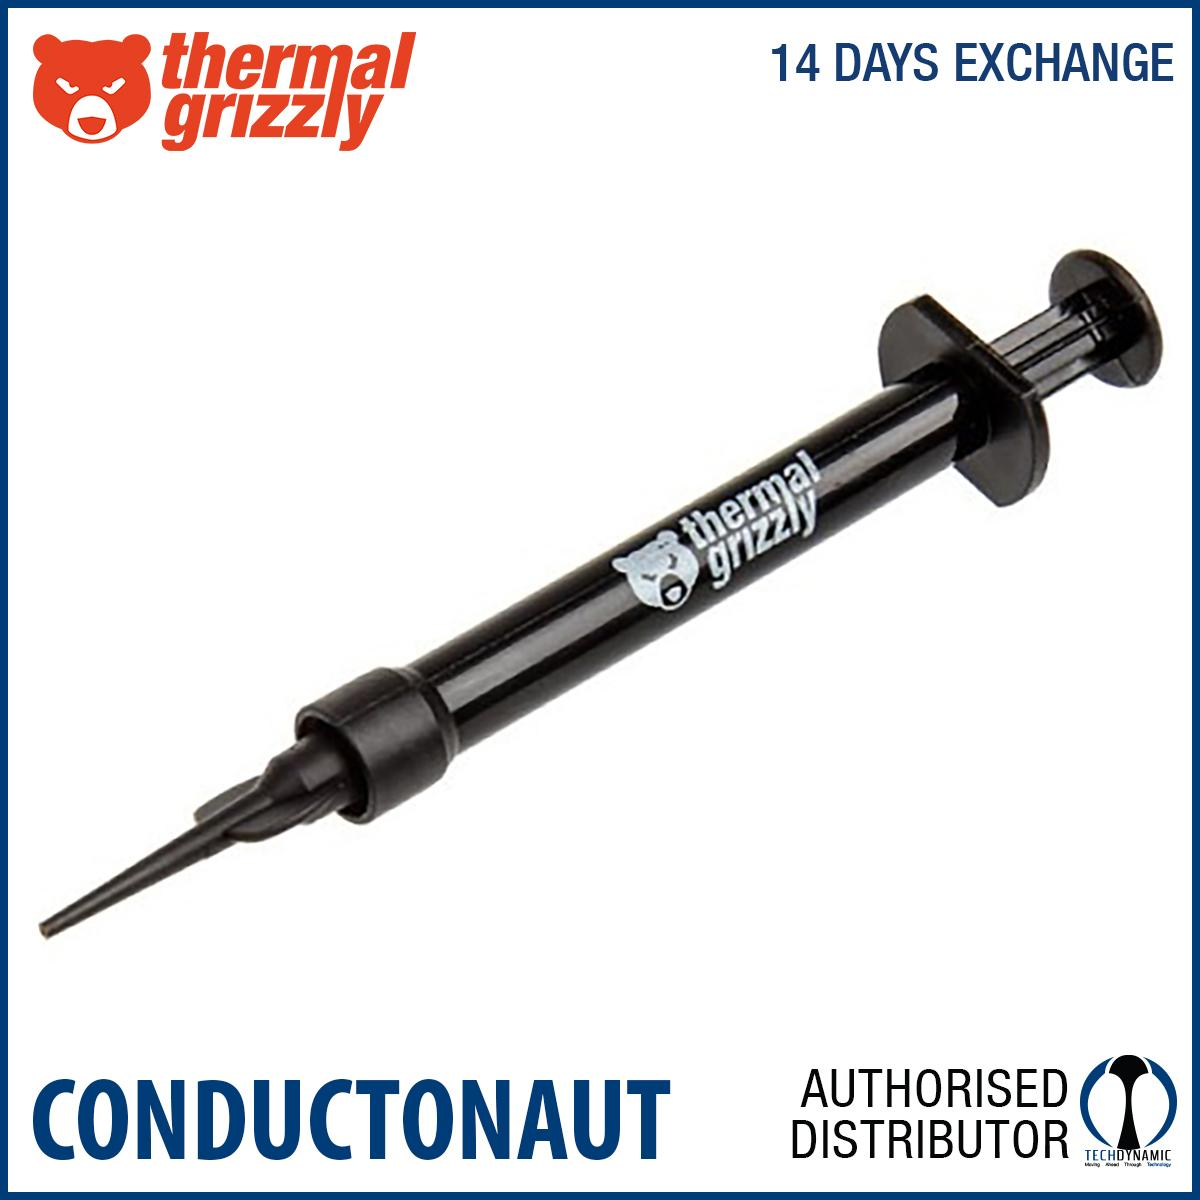 Thermal Grizzly Conductonaut Flussigmetall Warmeleitpaste 1 Gramm Coupon